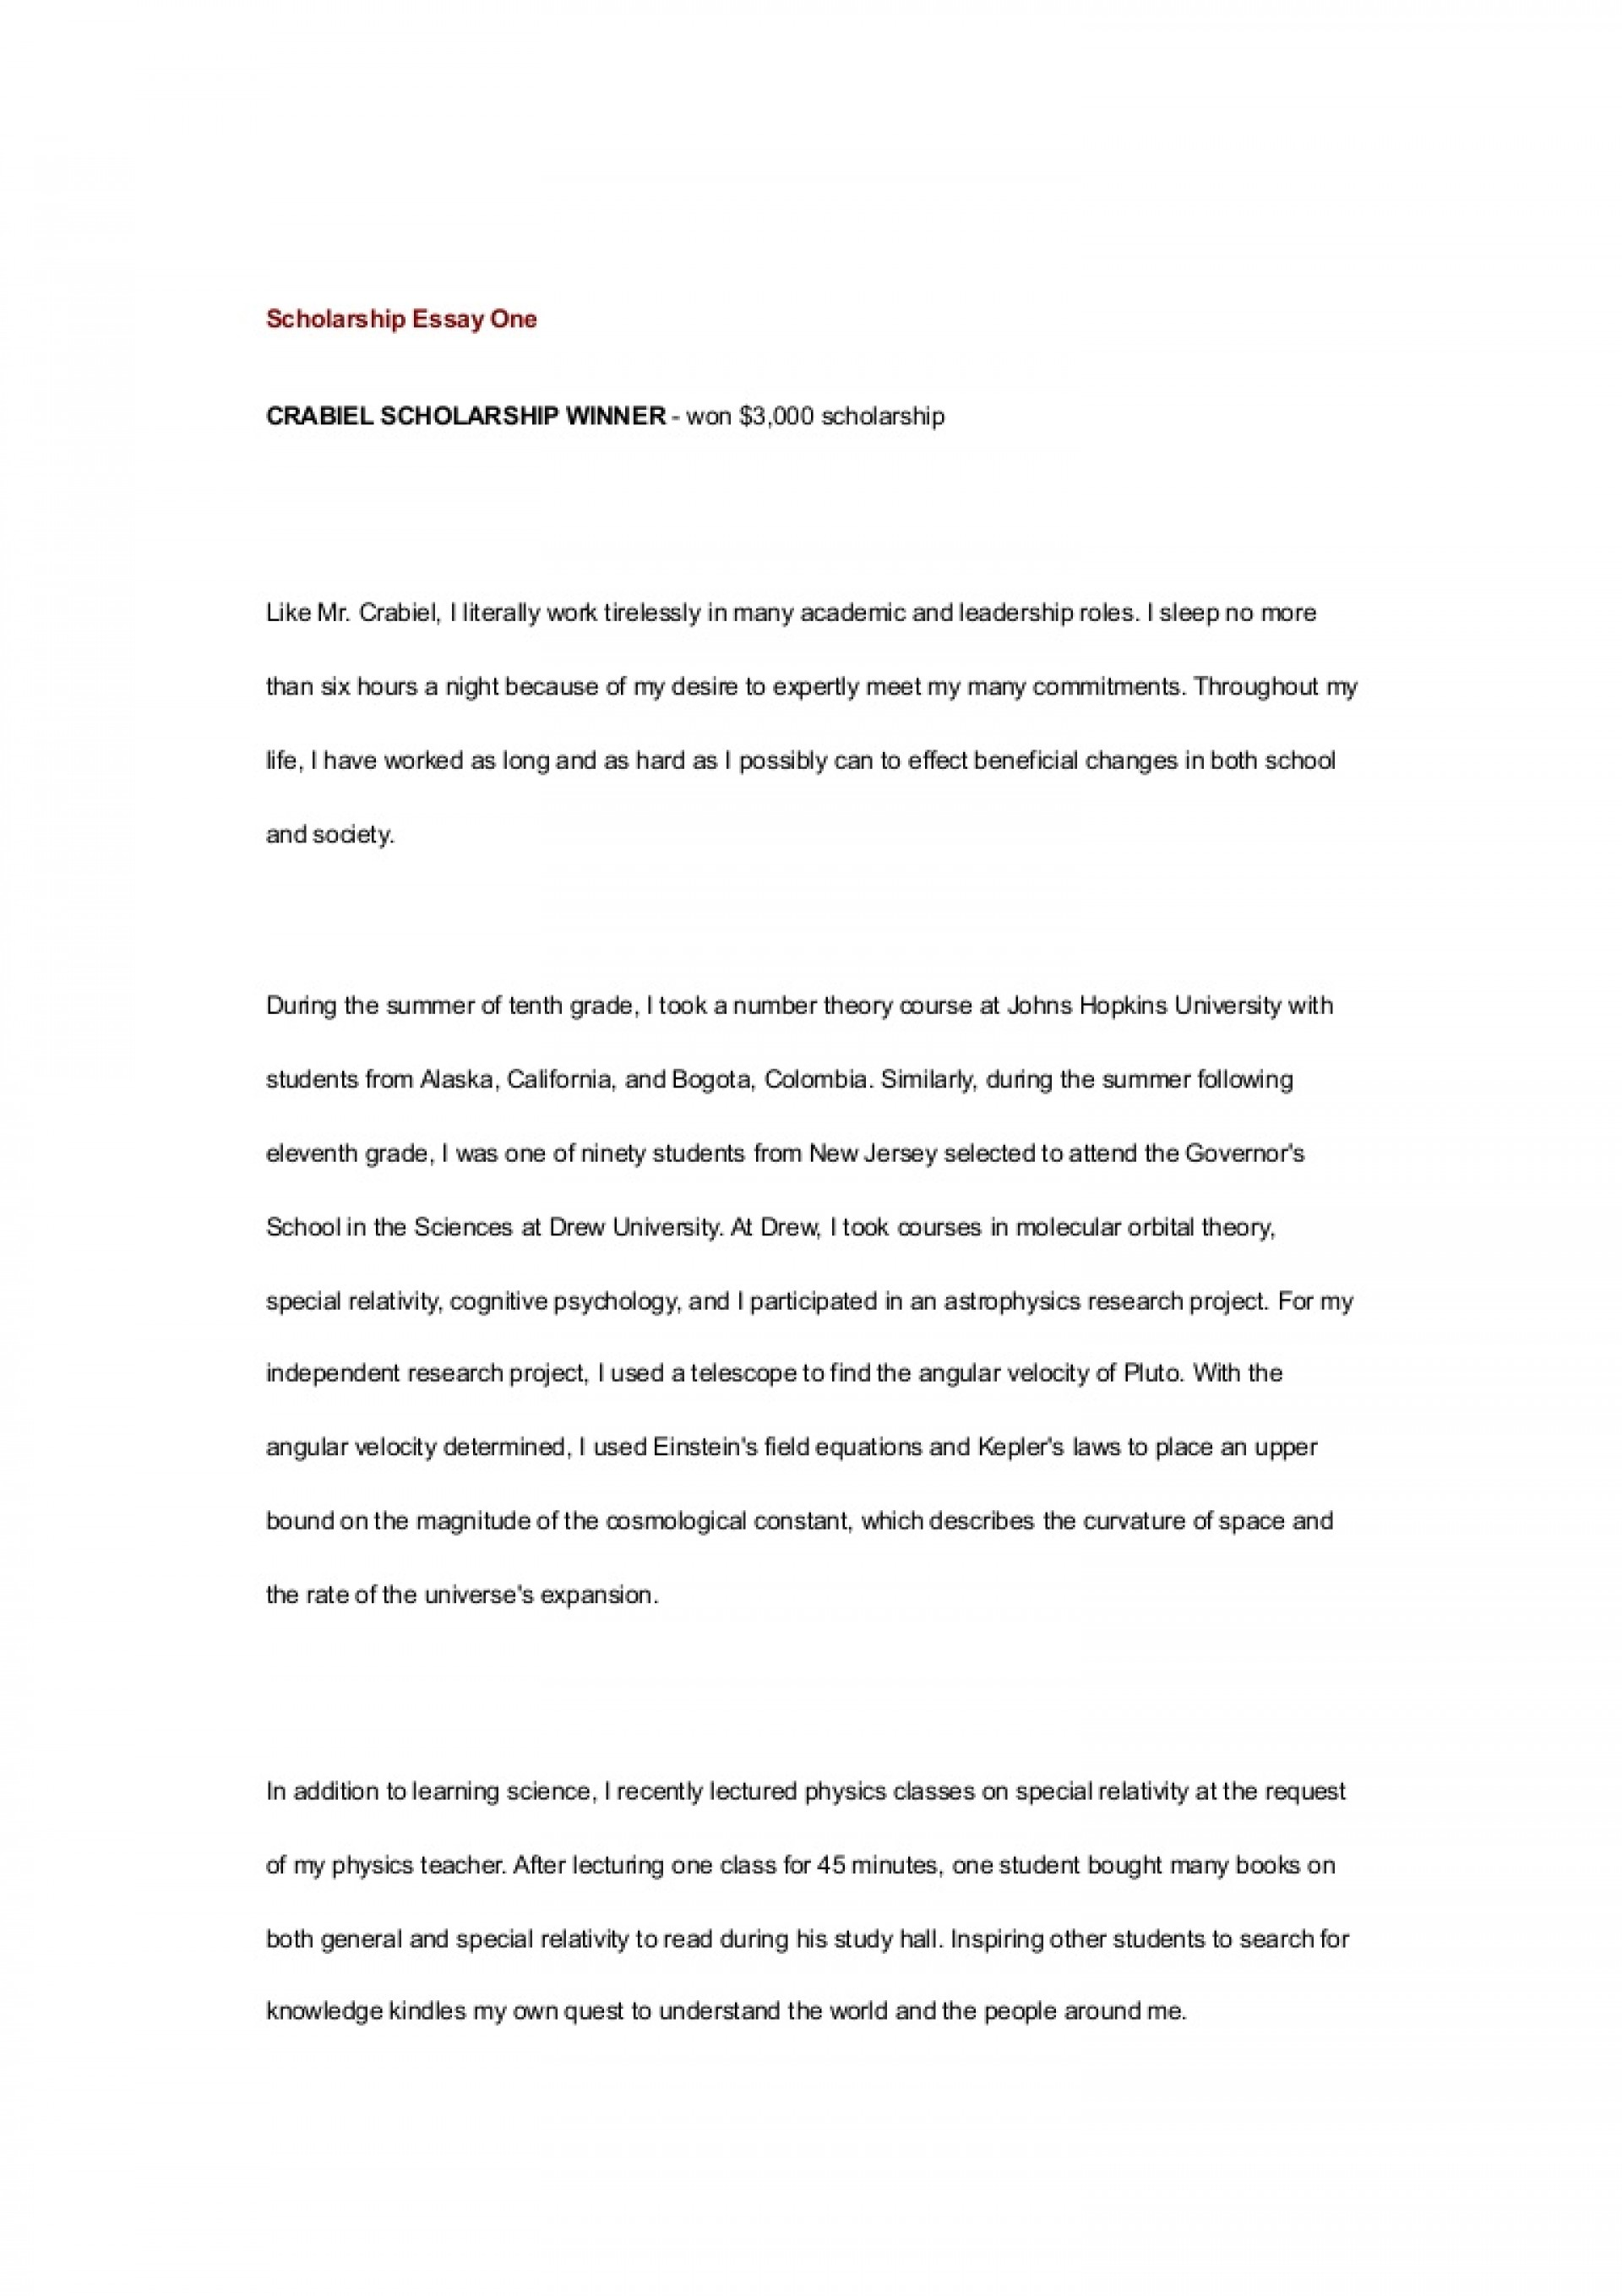 007 Essay Example Scholarships With Essays Scholarshipessayone Phpapp01 Thumbnail Singular Without Writing For High School Juniors Class Of 2020 No 2019 1920